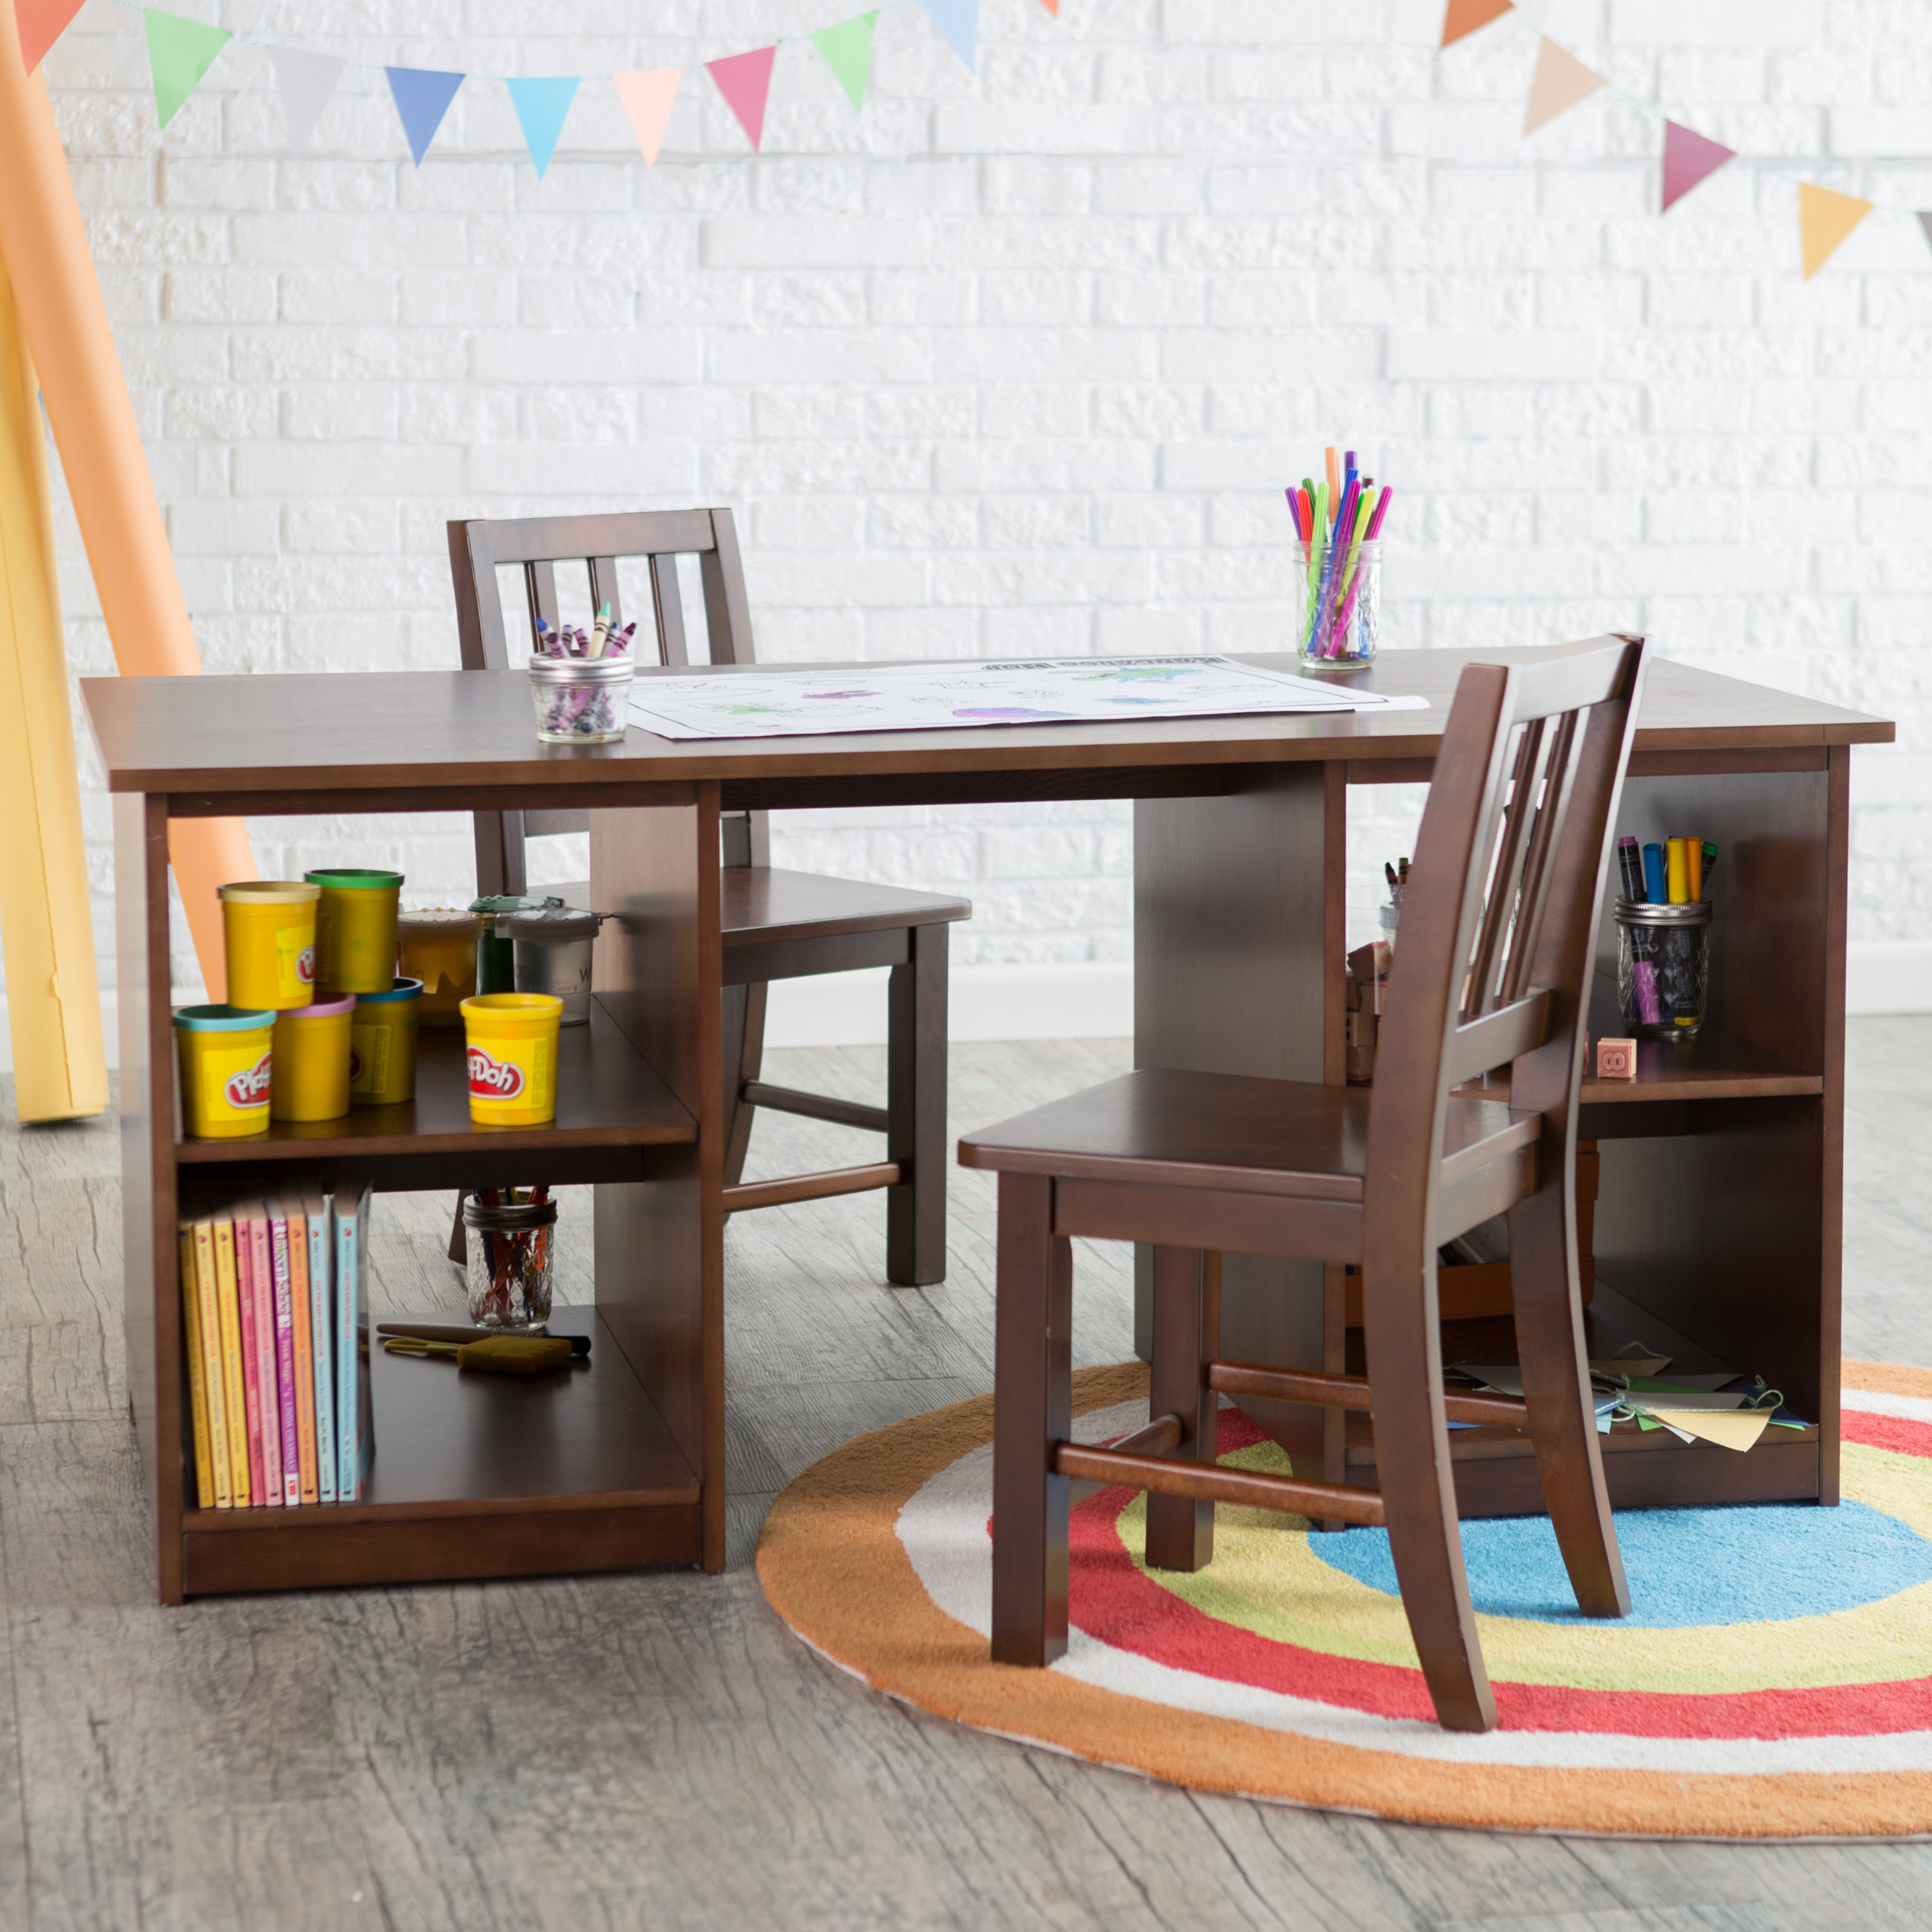 Toddler Table And Chairs With Storage   Ideas On Foter